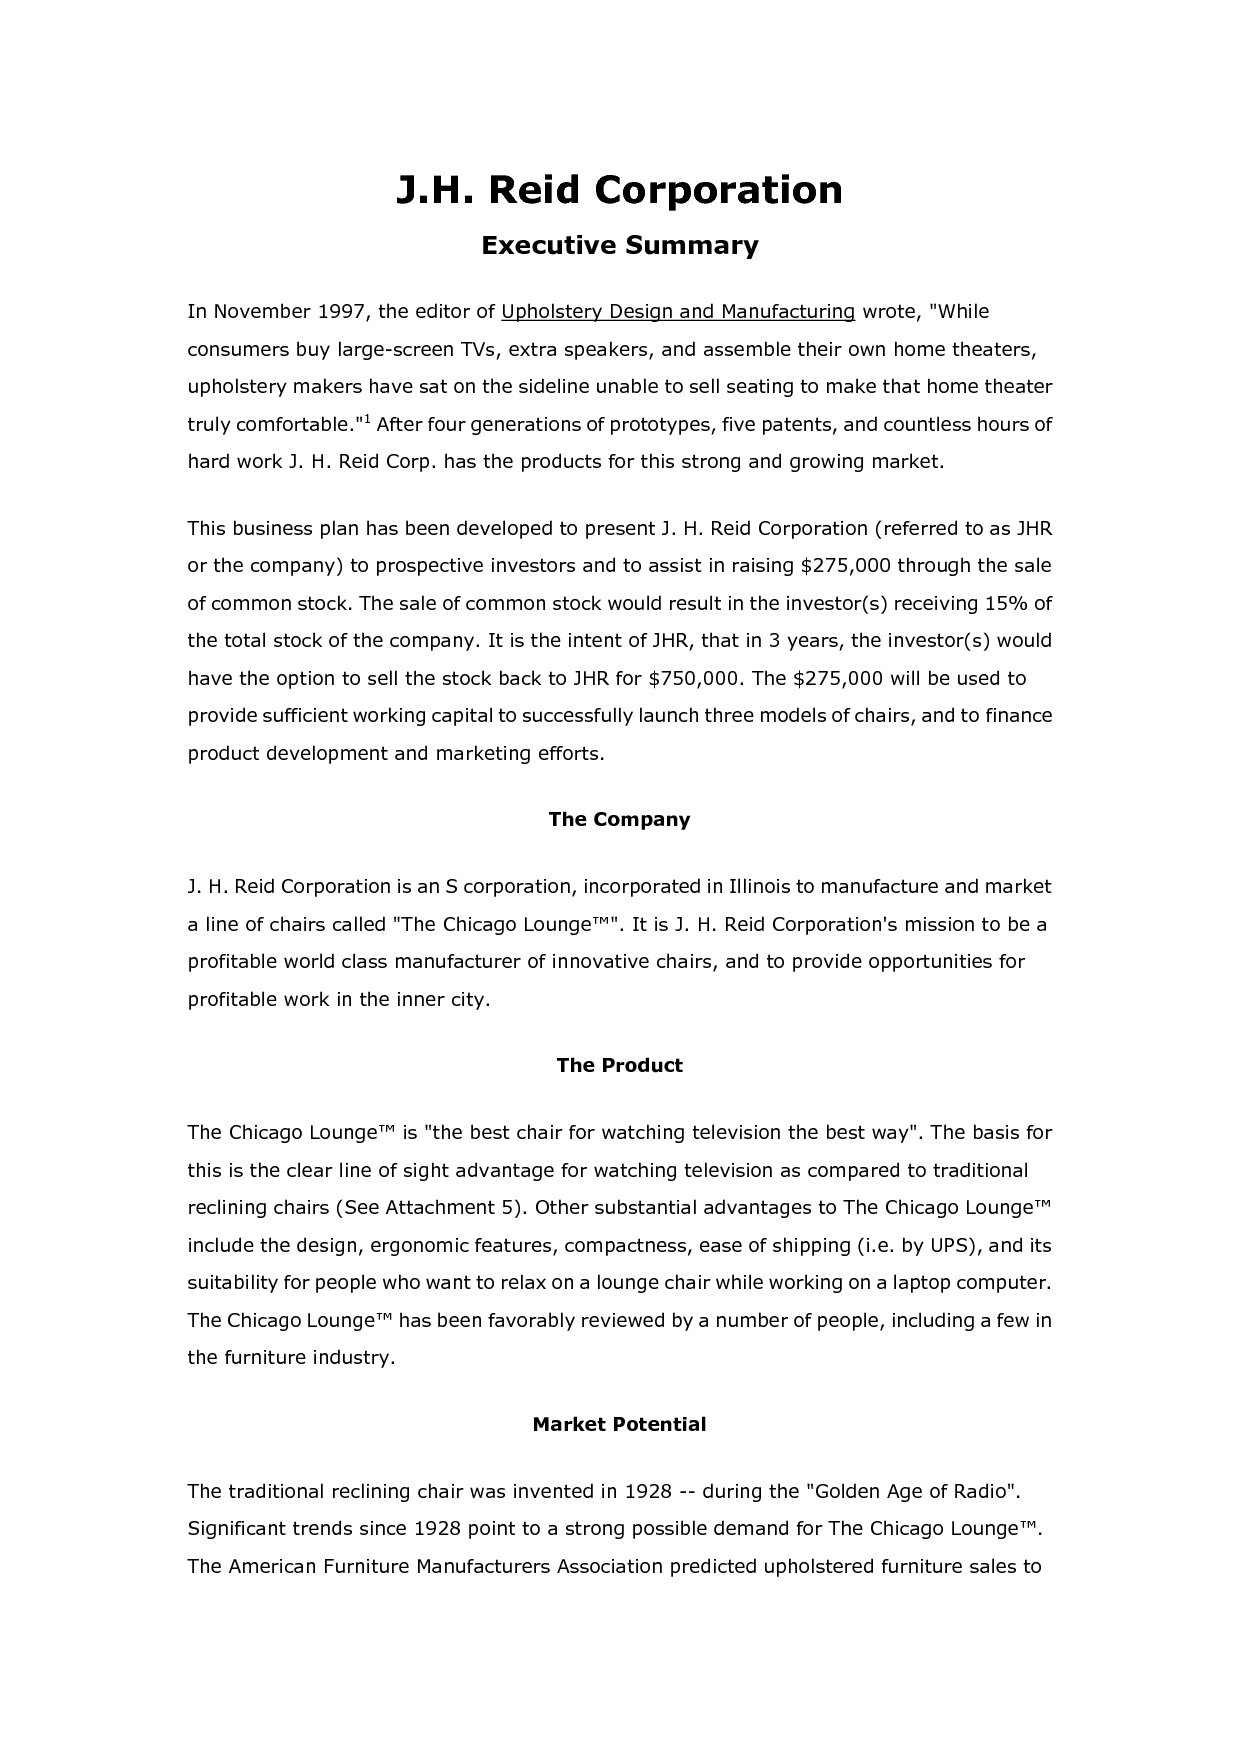 sample proposal essay examples of a proposal essay apa example examples of a proposal essayproposal essays